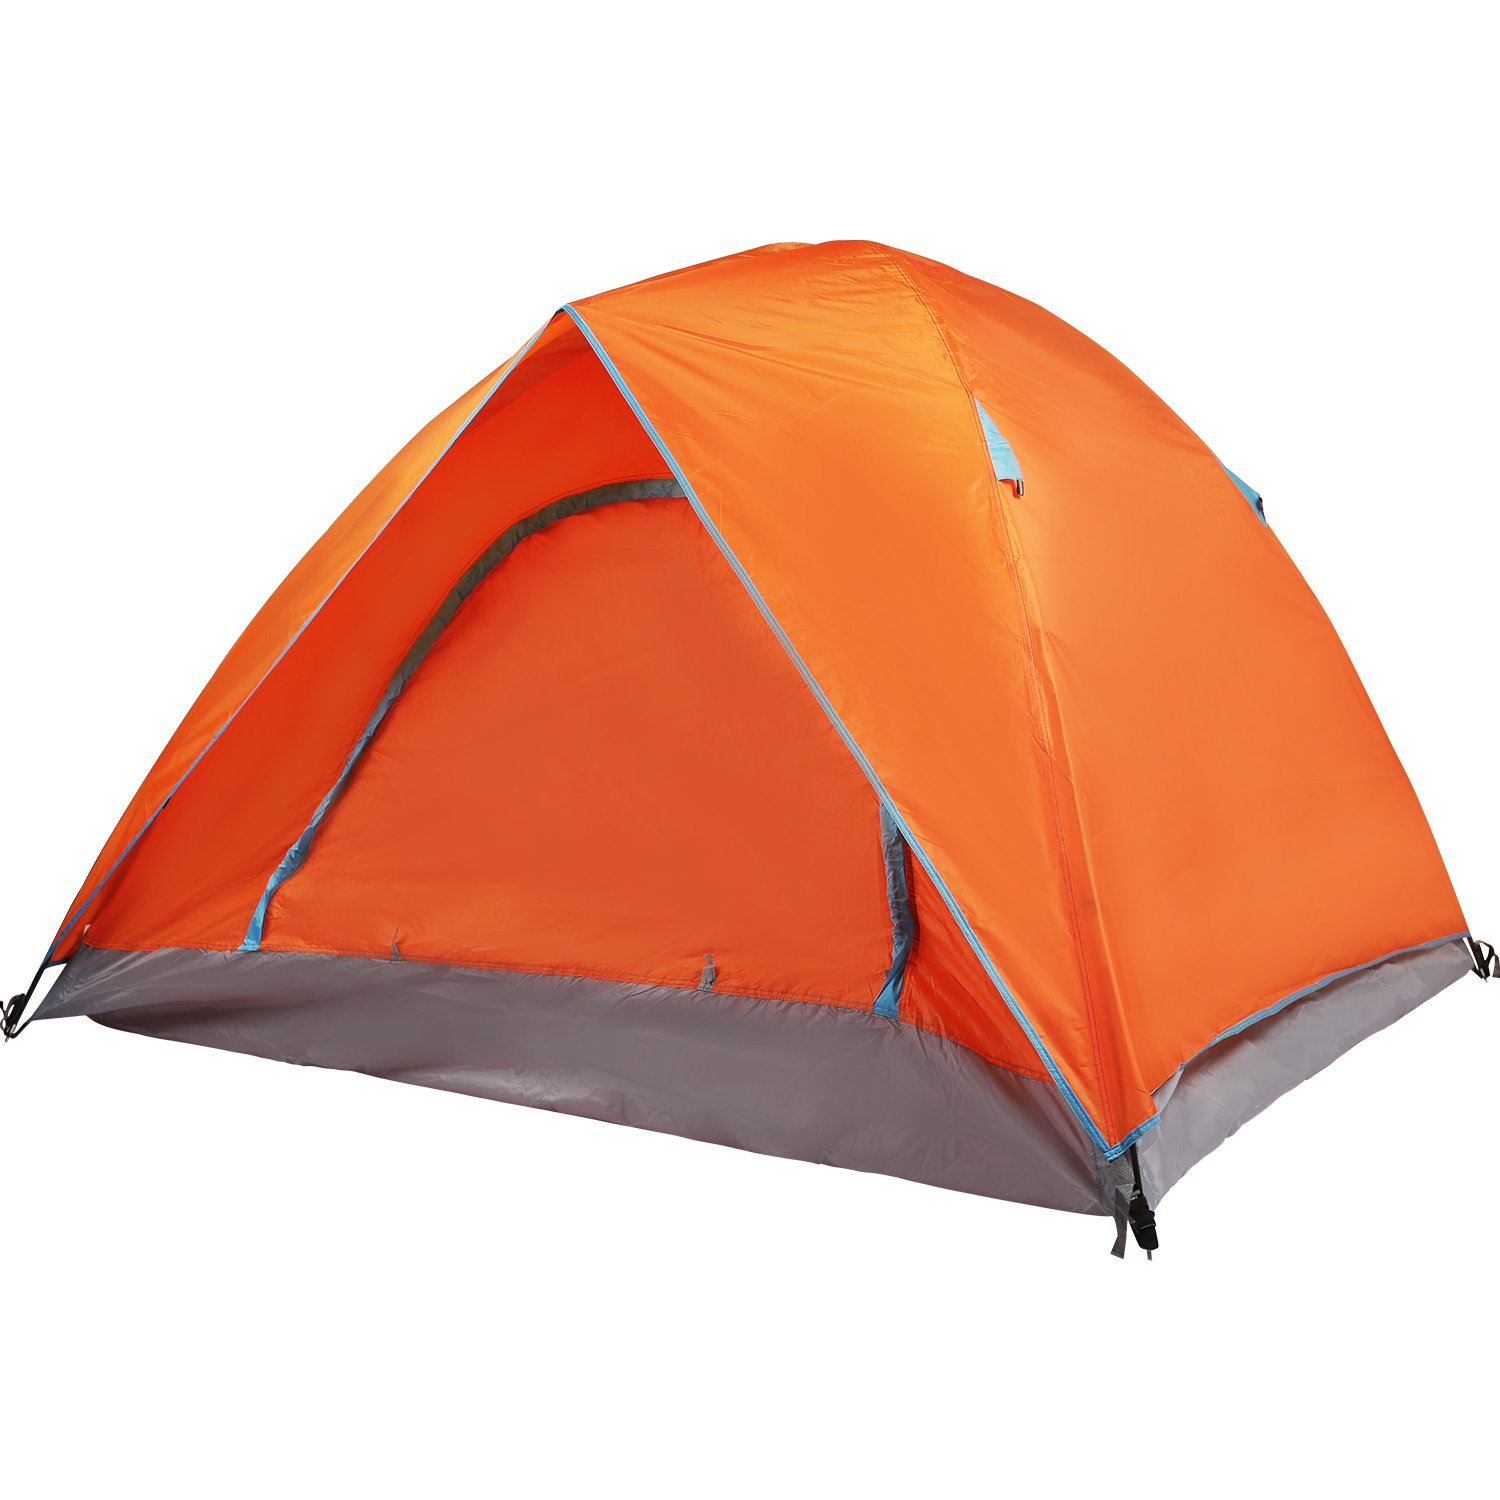 REDCAMP 2 Person Camping Tent Waterptoof, 3 Season Lightweight Dome Tent with Double Layers for Outdoor Backpacking, Orange by REDCAMP